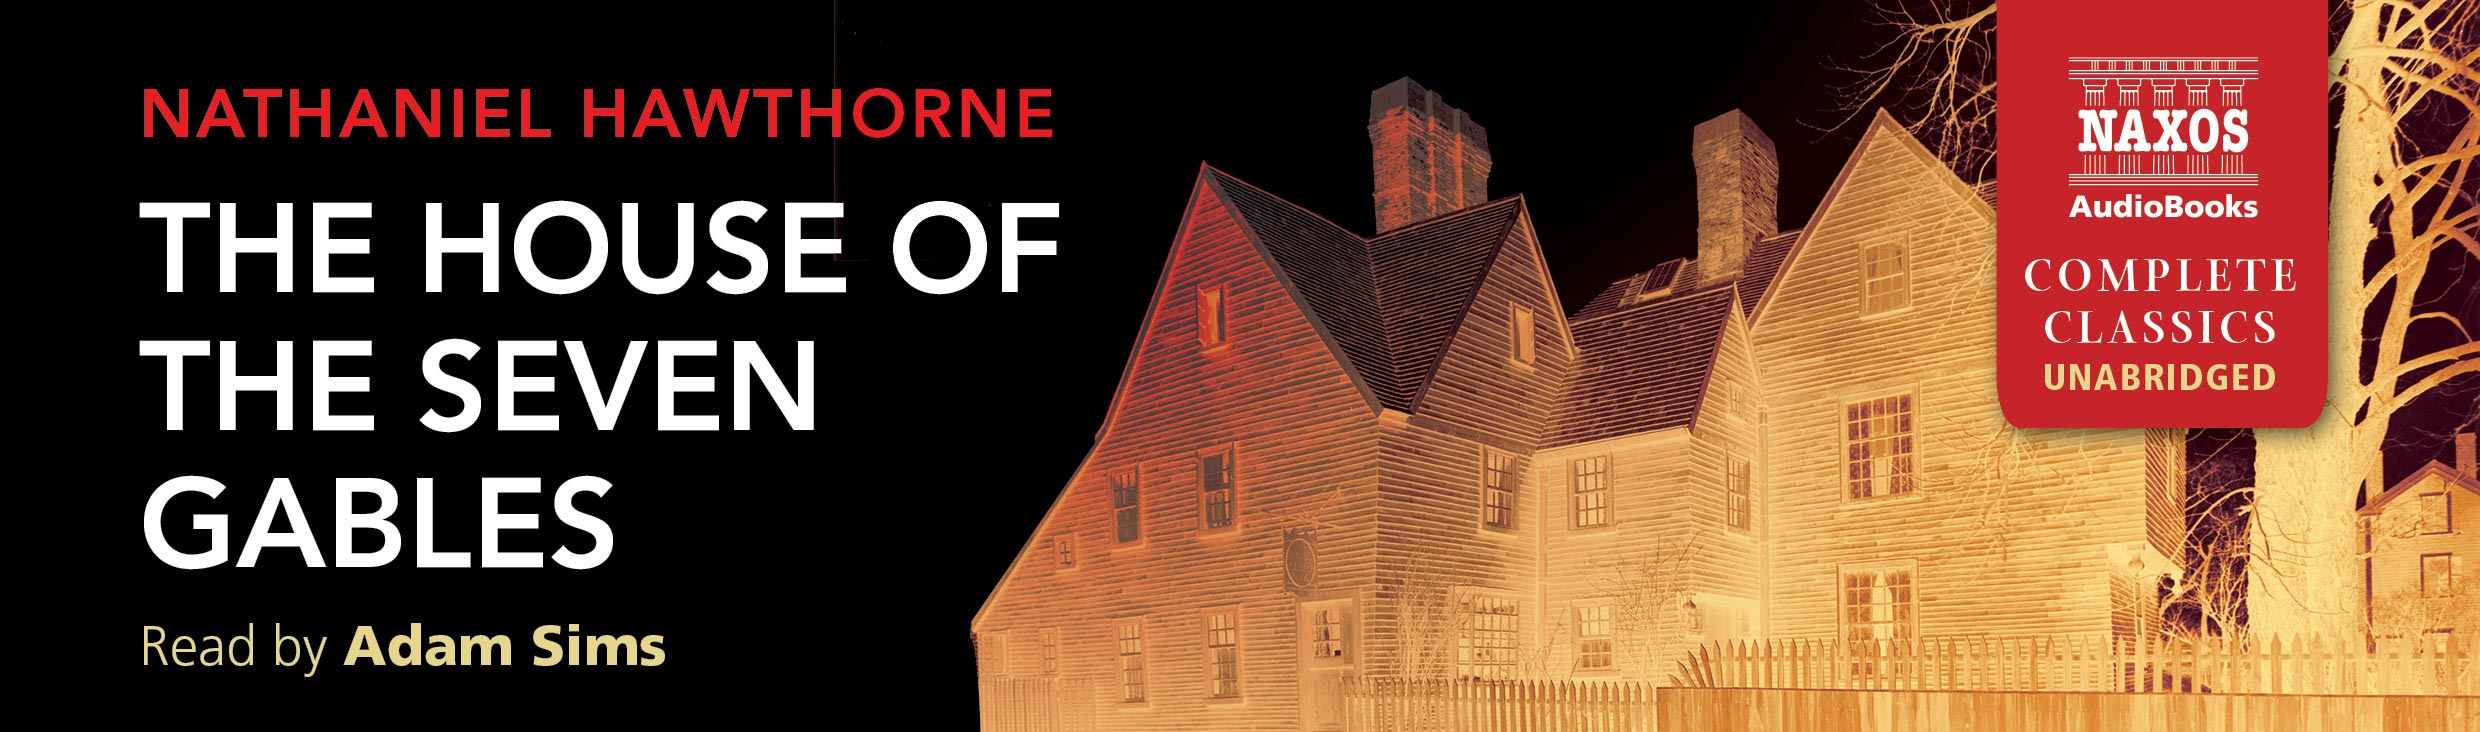 The House of the Seven Gables (unabridged)